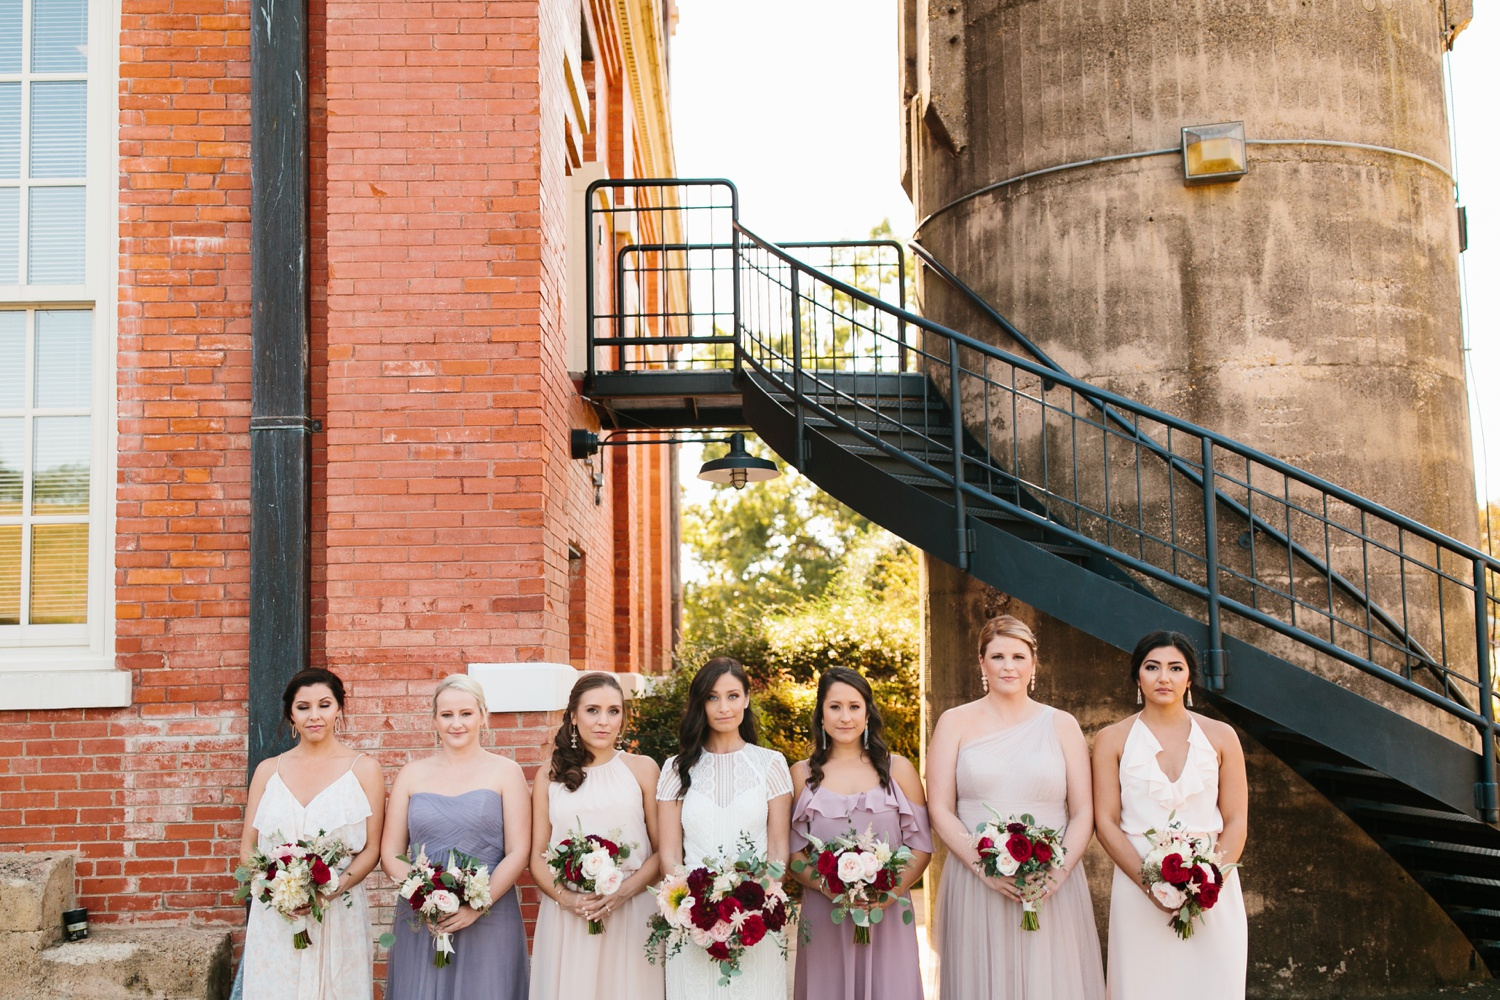 Kadee + Tyler | a raw, emotional wedding at the Filter Building on White Rock Lake in Dallas, TX by North Texas Wedding Photographer, Rachel Meagan Photography 093